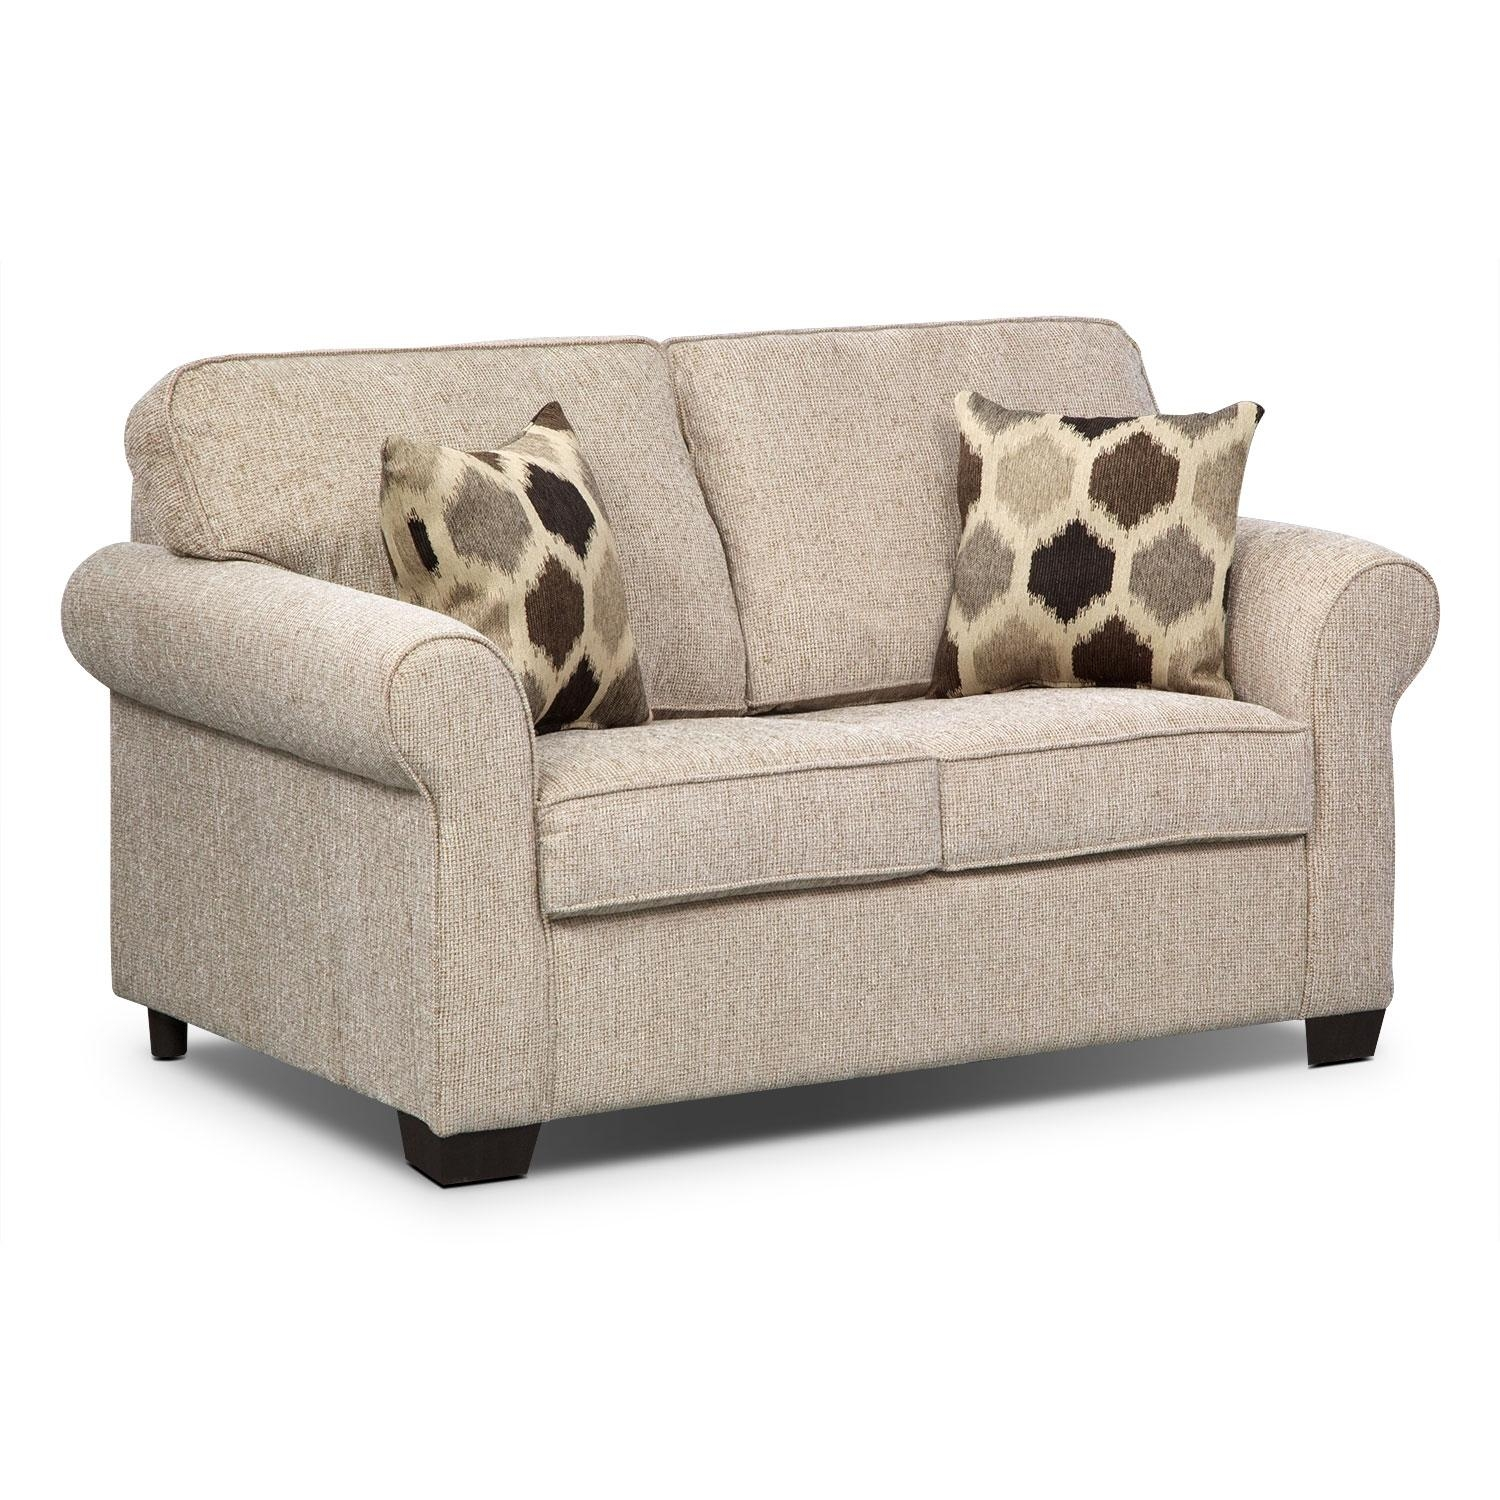 Furniture: Comfortable Tempurpedic Sofa Bed For Cozy Living Room With Twin Sofa Chairs (Image 5 of 20)